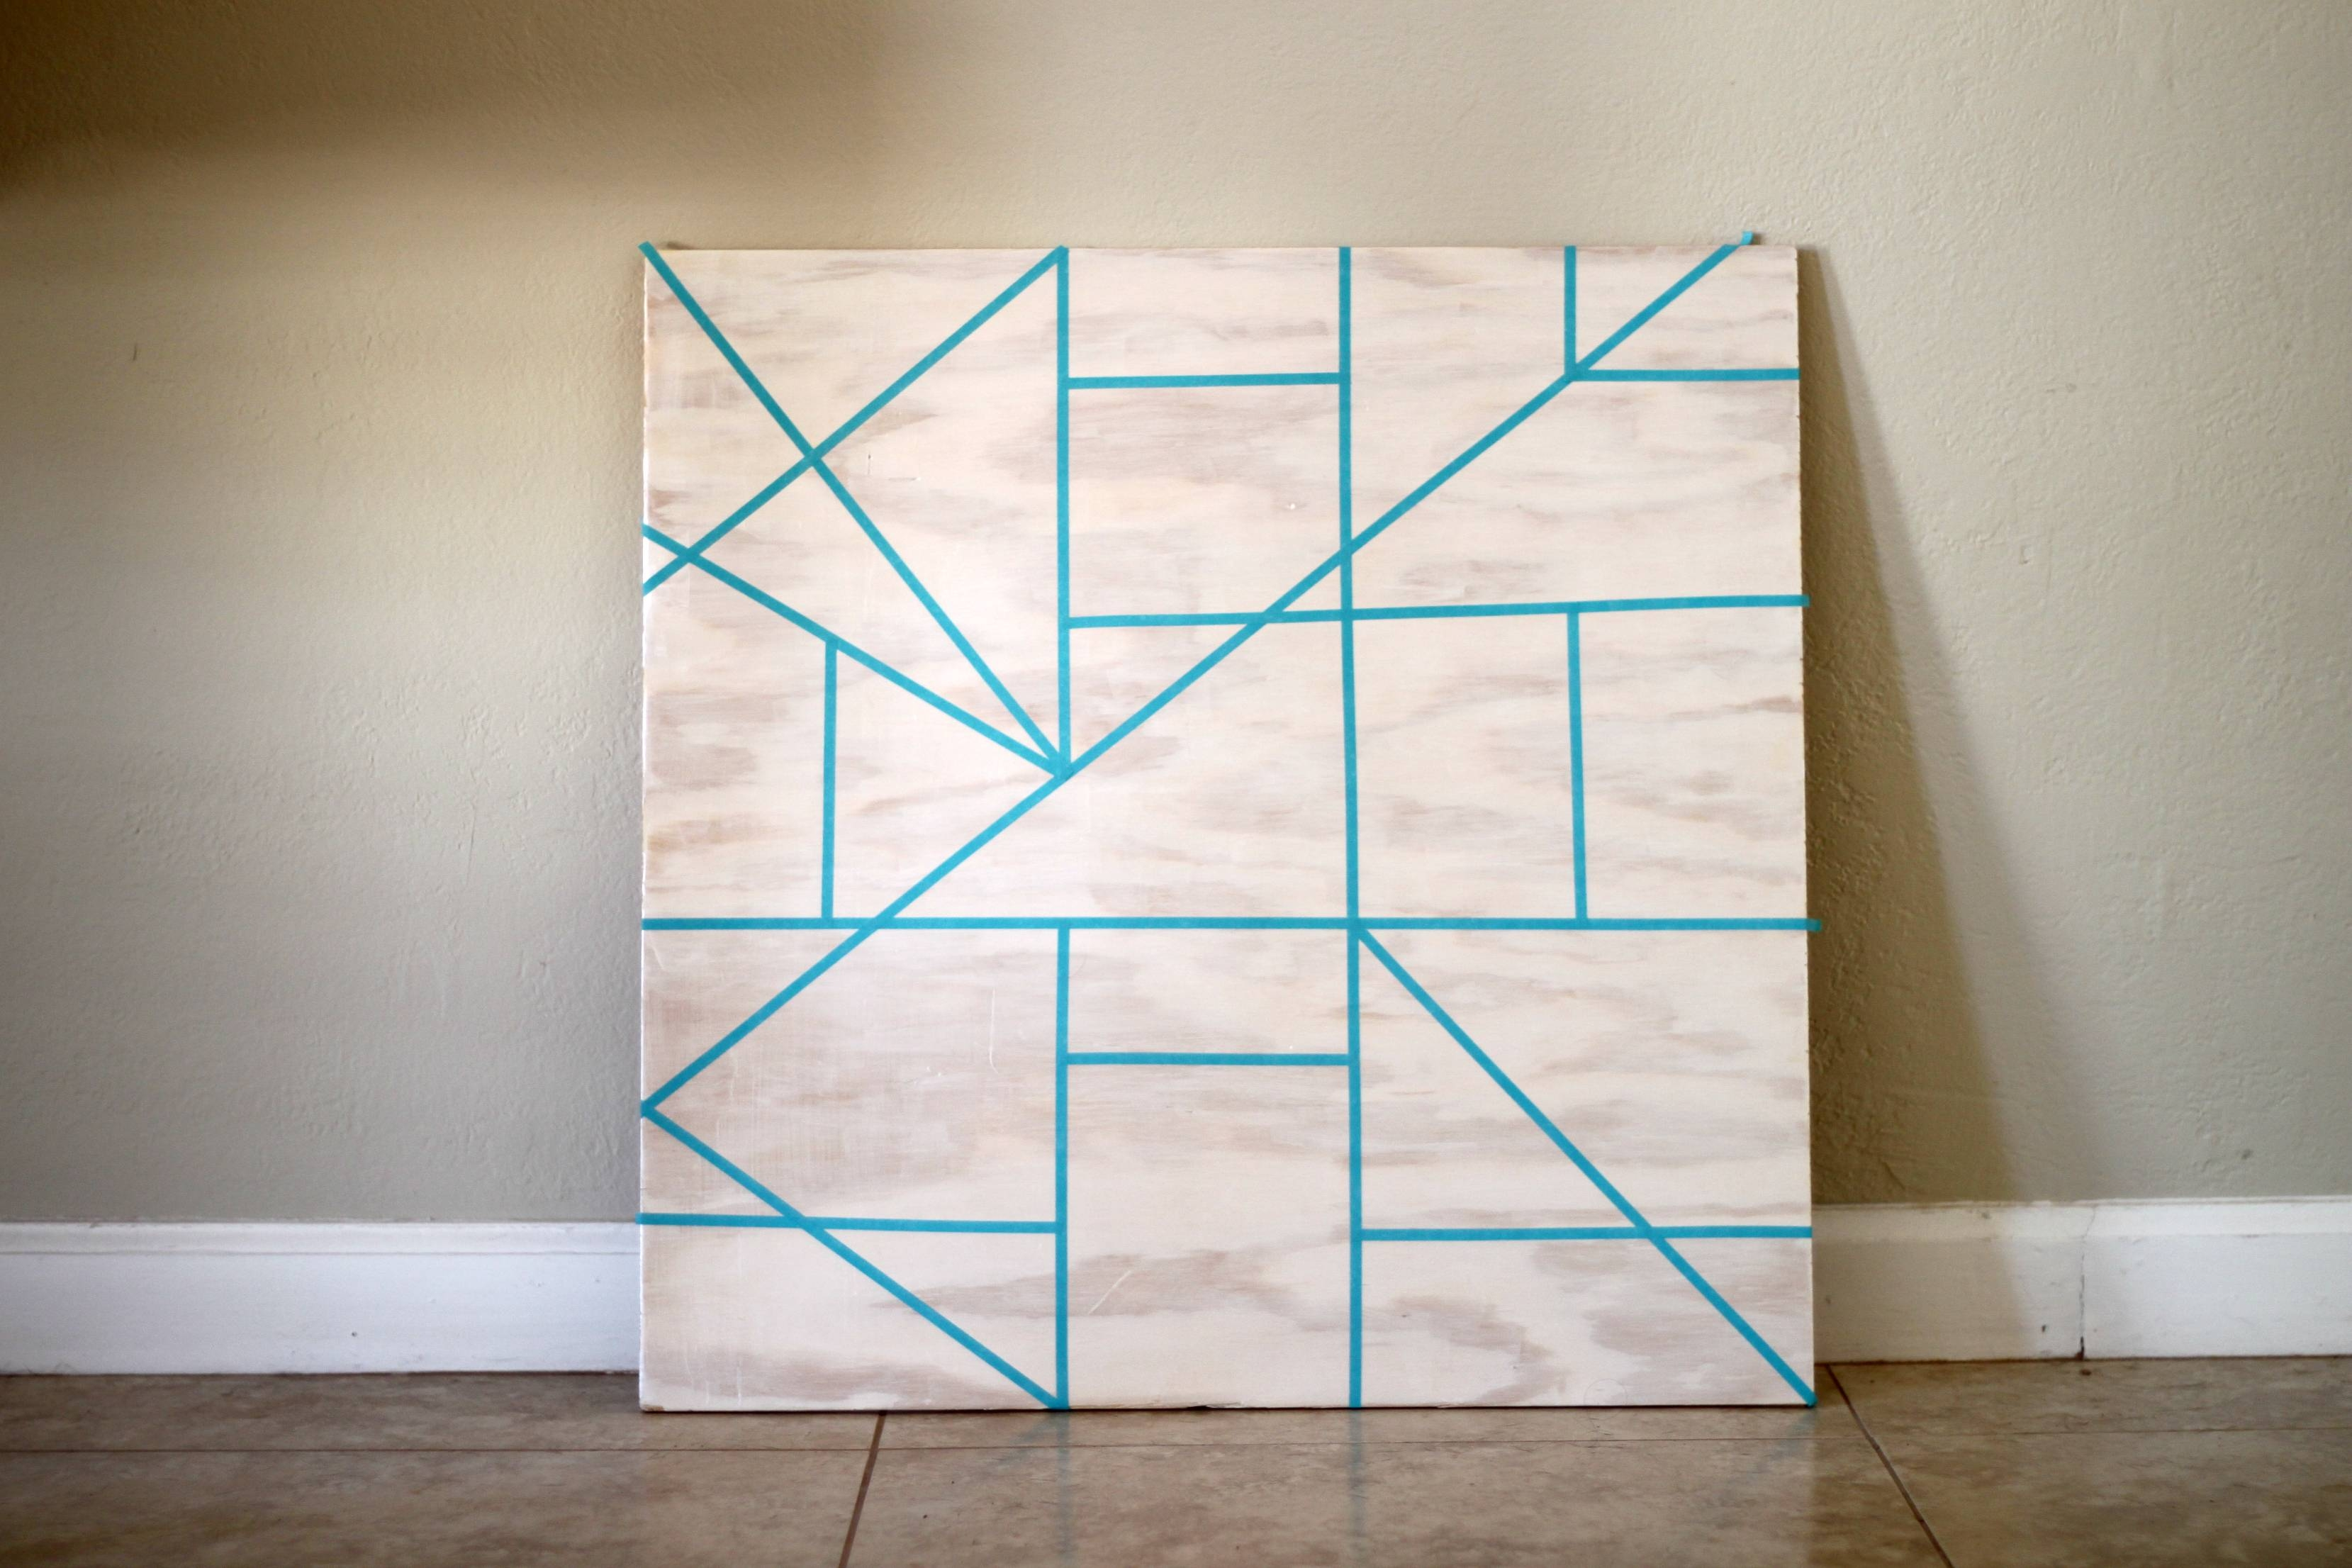 Wall Ideas: Geometric Wall Decor Design (View 20 of 20)